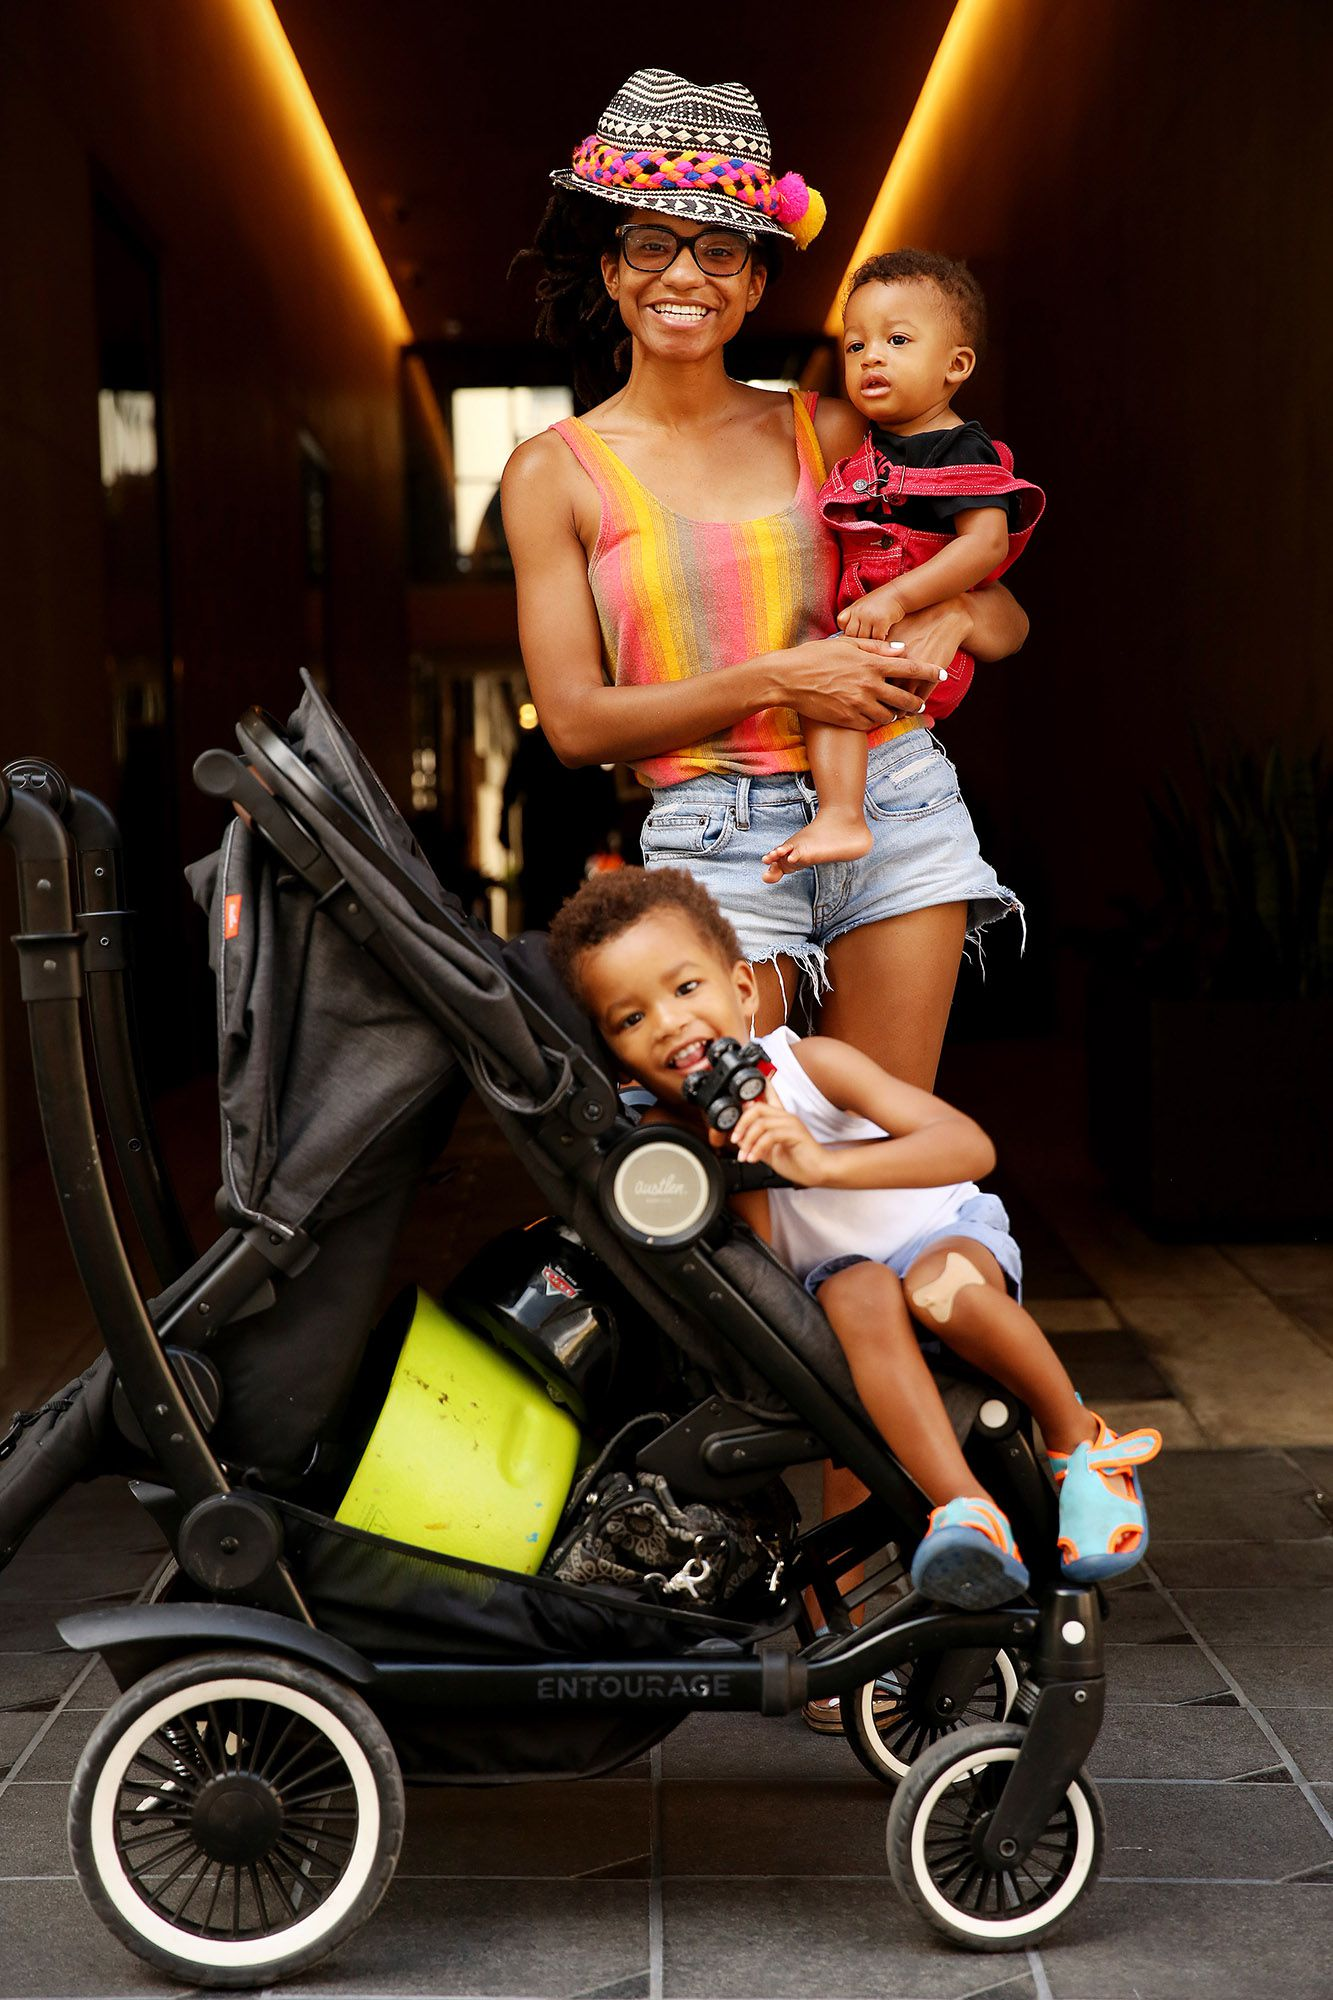 Kenya MomPremier of Dallas holds her son Kemet MomPremier, nine months old, while her other son Miken MomPremier, 2, sits in a stroller during a photograph in the alley connecting Commerce and Main streets on July 11.